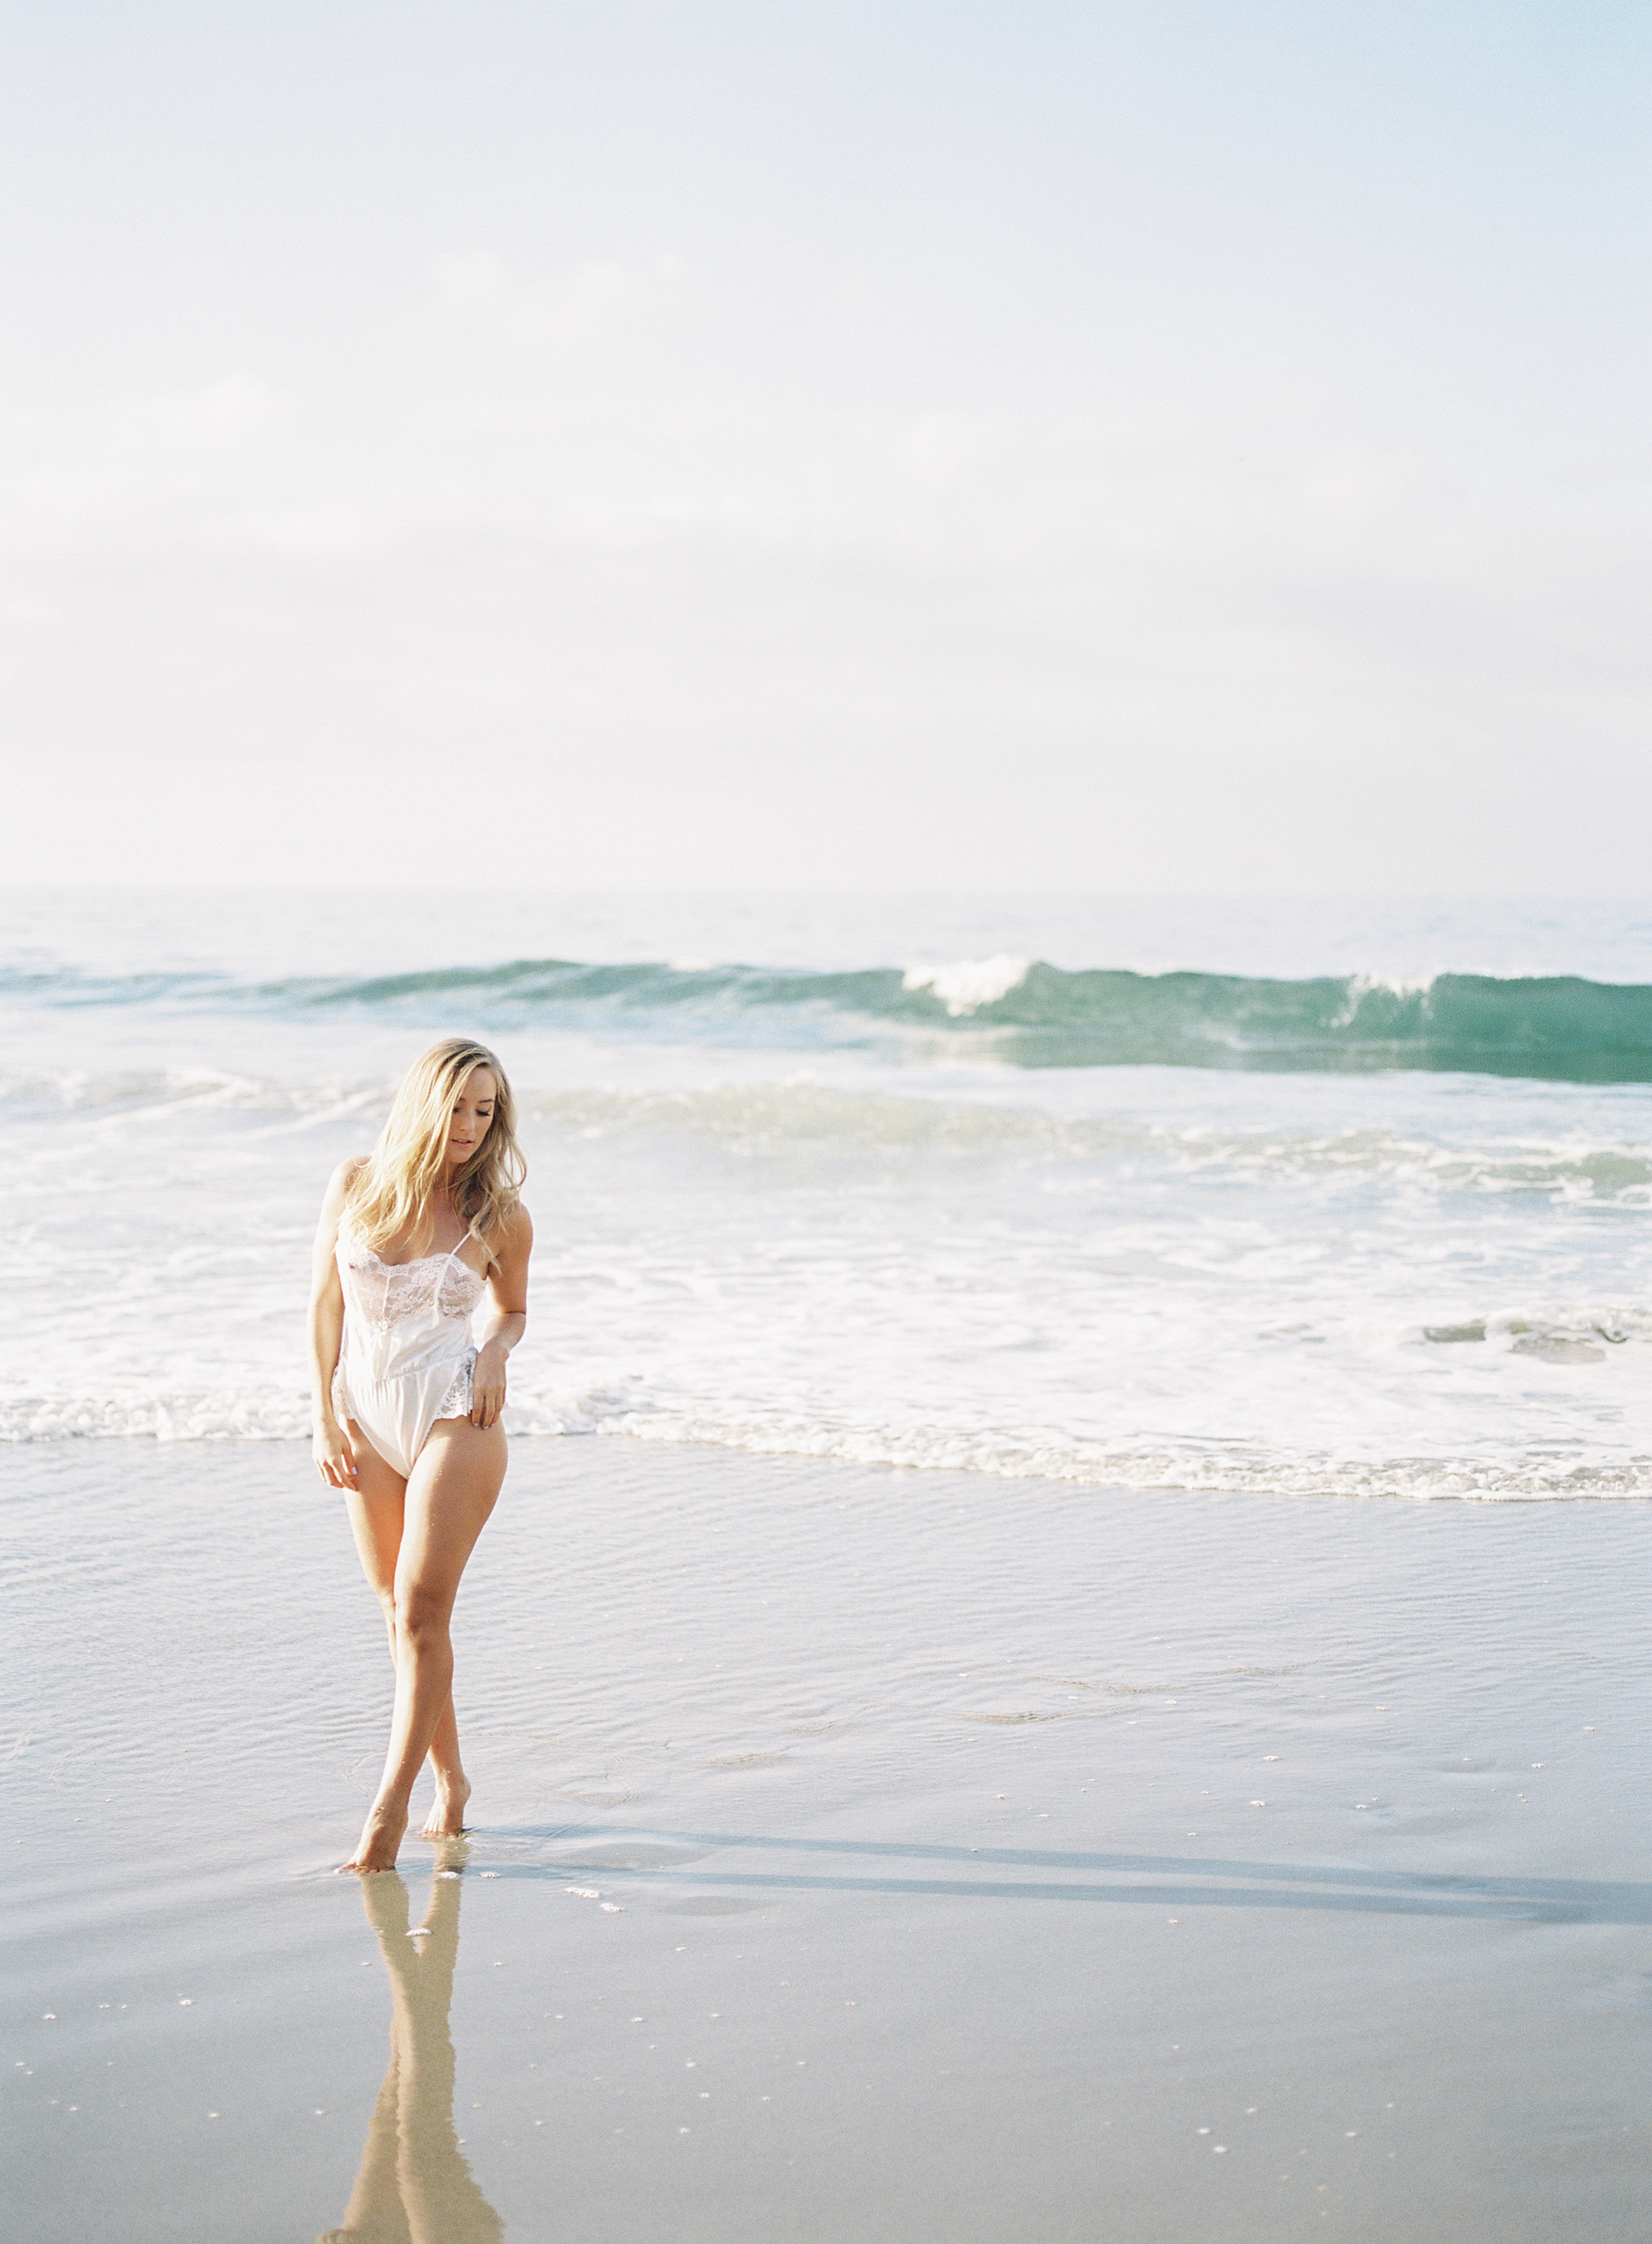 Charlotta - El Matador Beach Malibu - Peaches & Twine Fine Art Film Photography -98.jpg